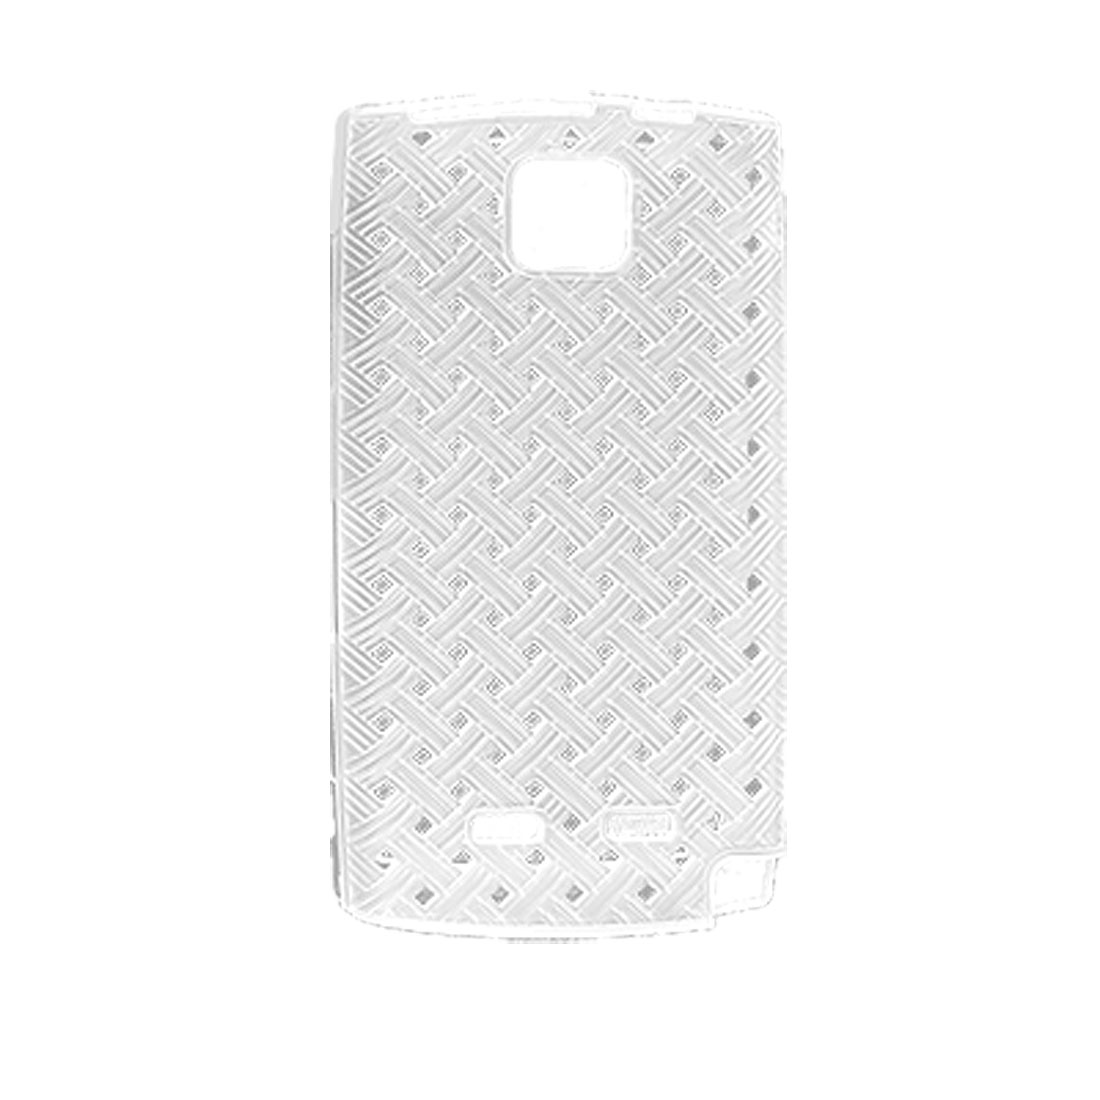 White Soft Plastic Woven Pattern Shell Case for Nokia 5250